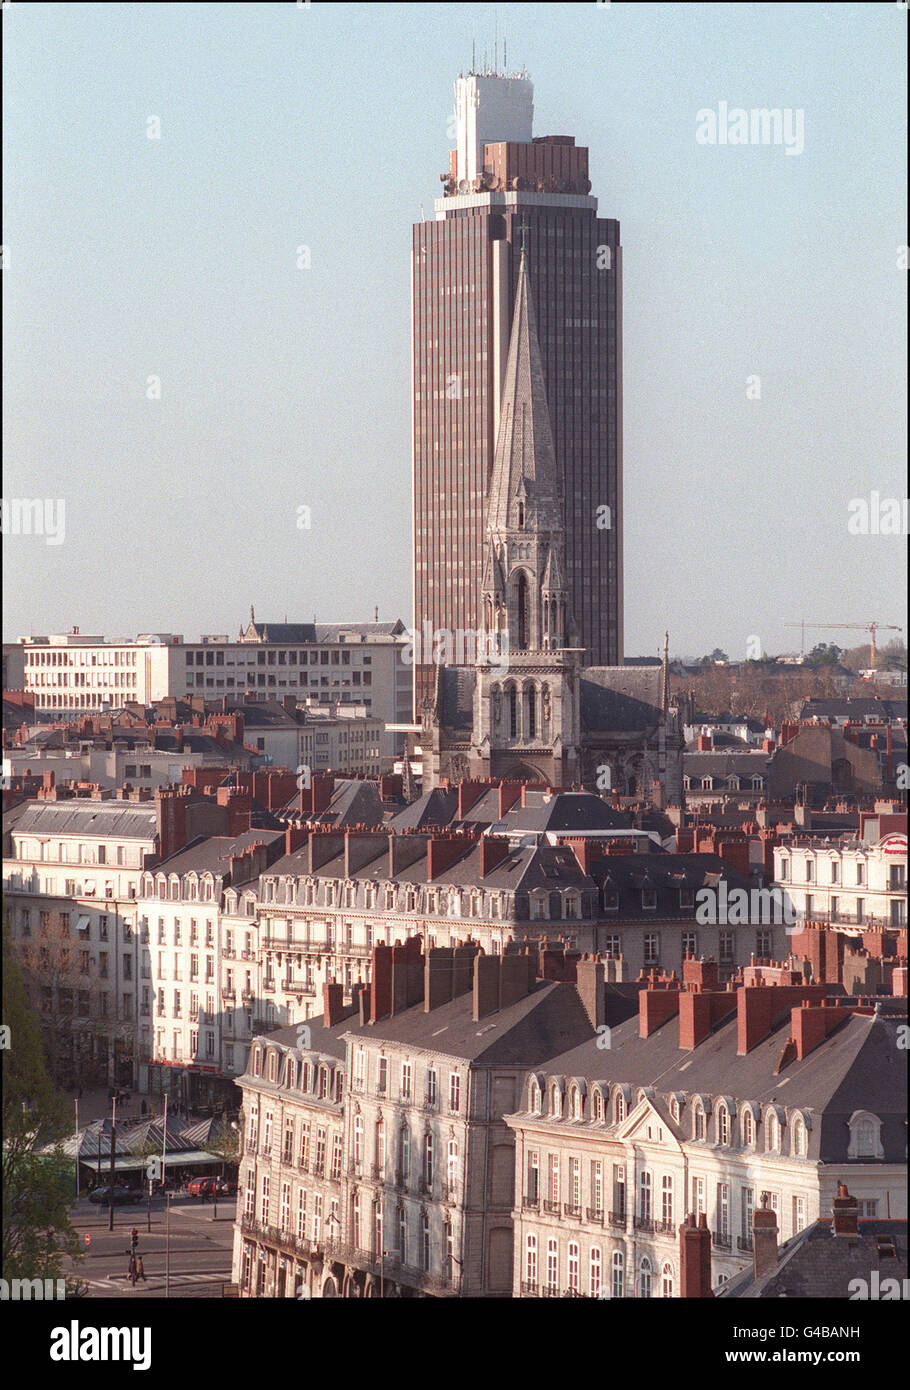 1998 World Cup AFP PHOTO View of theTour de Bretagne in Nantes, taken in April. Nantes is one of the ten cities - Stock Image